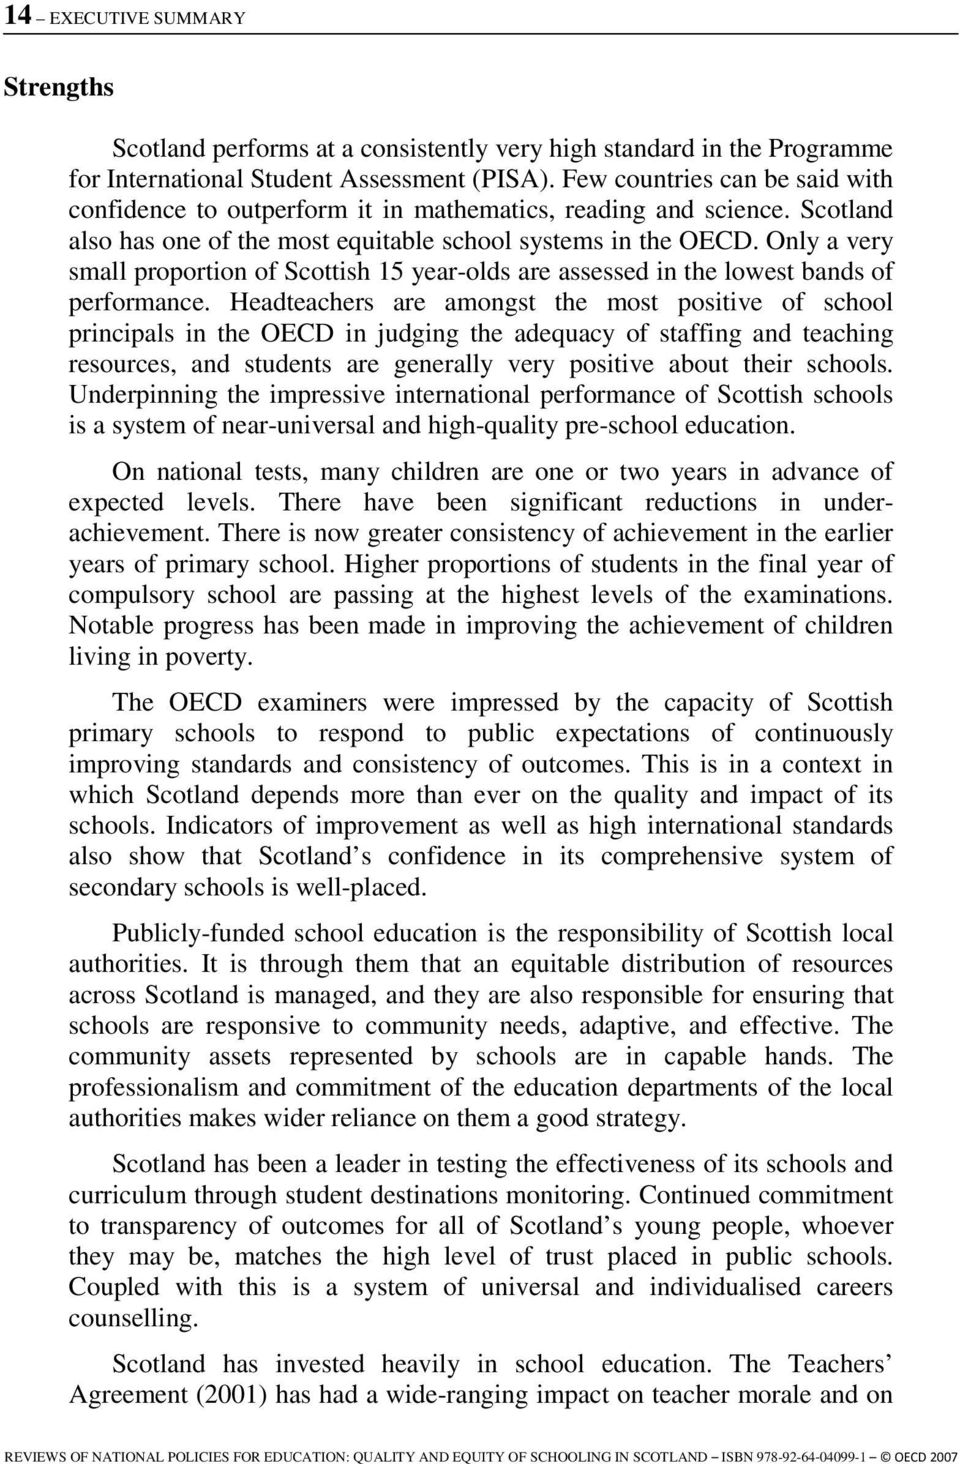 Only a very small proportion of Scottish 15 year-olds are assessed in the lowest bands of performance.